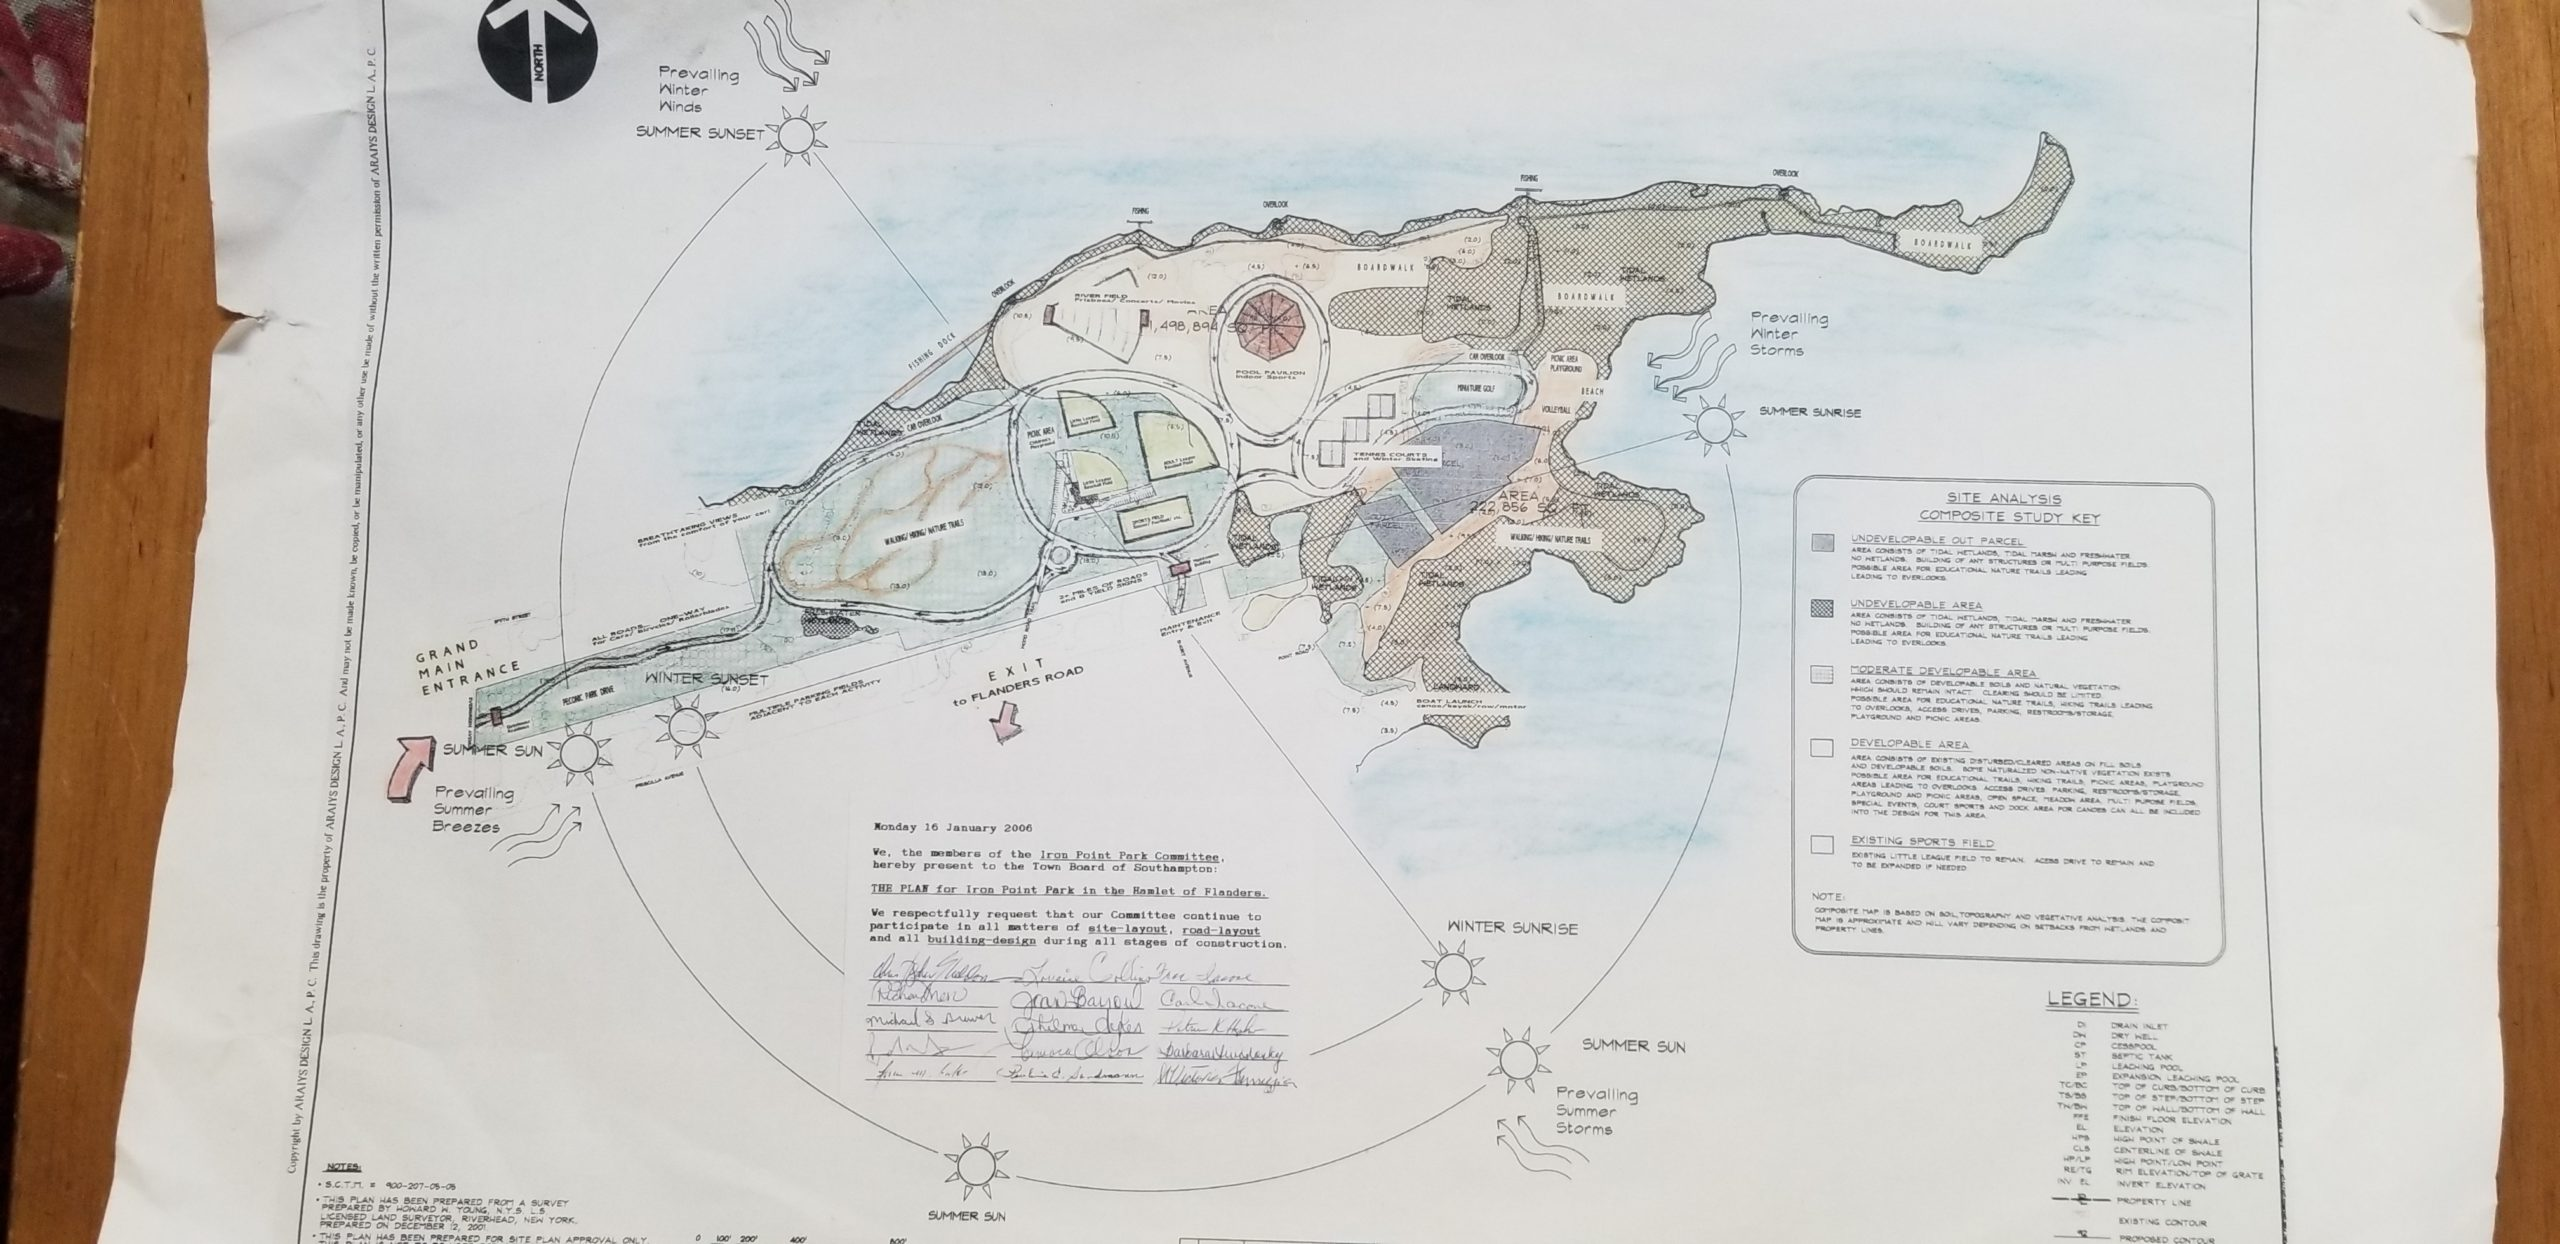 The original map of plans for Iron Point Park.